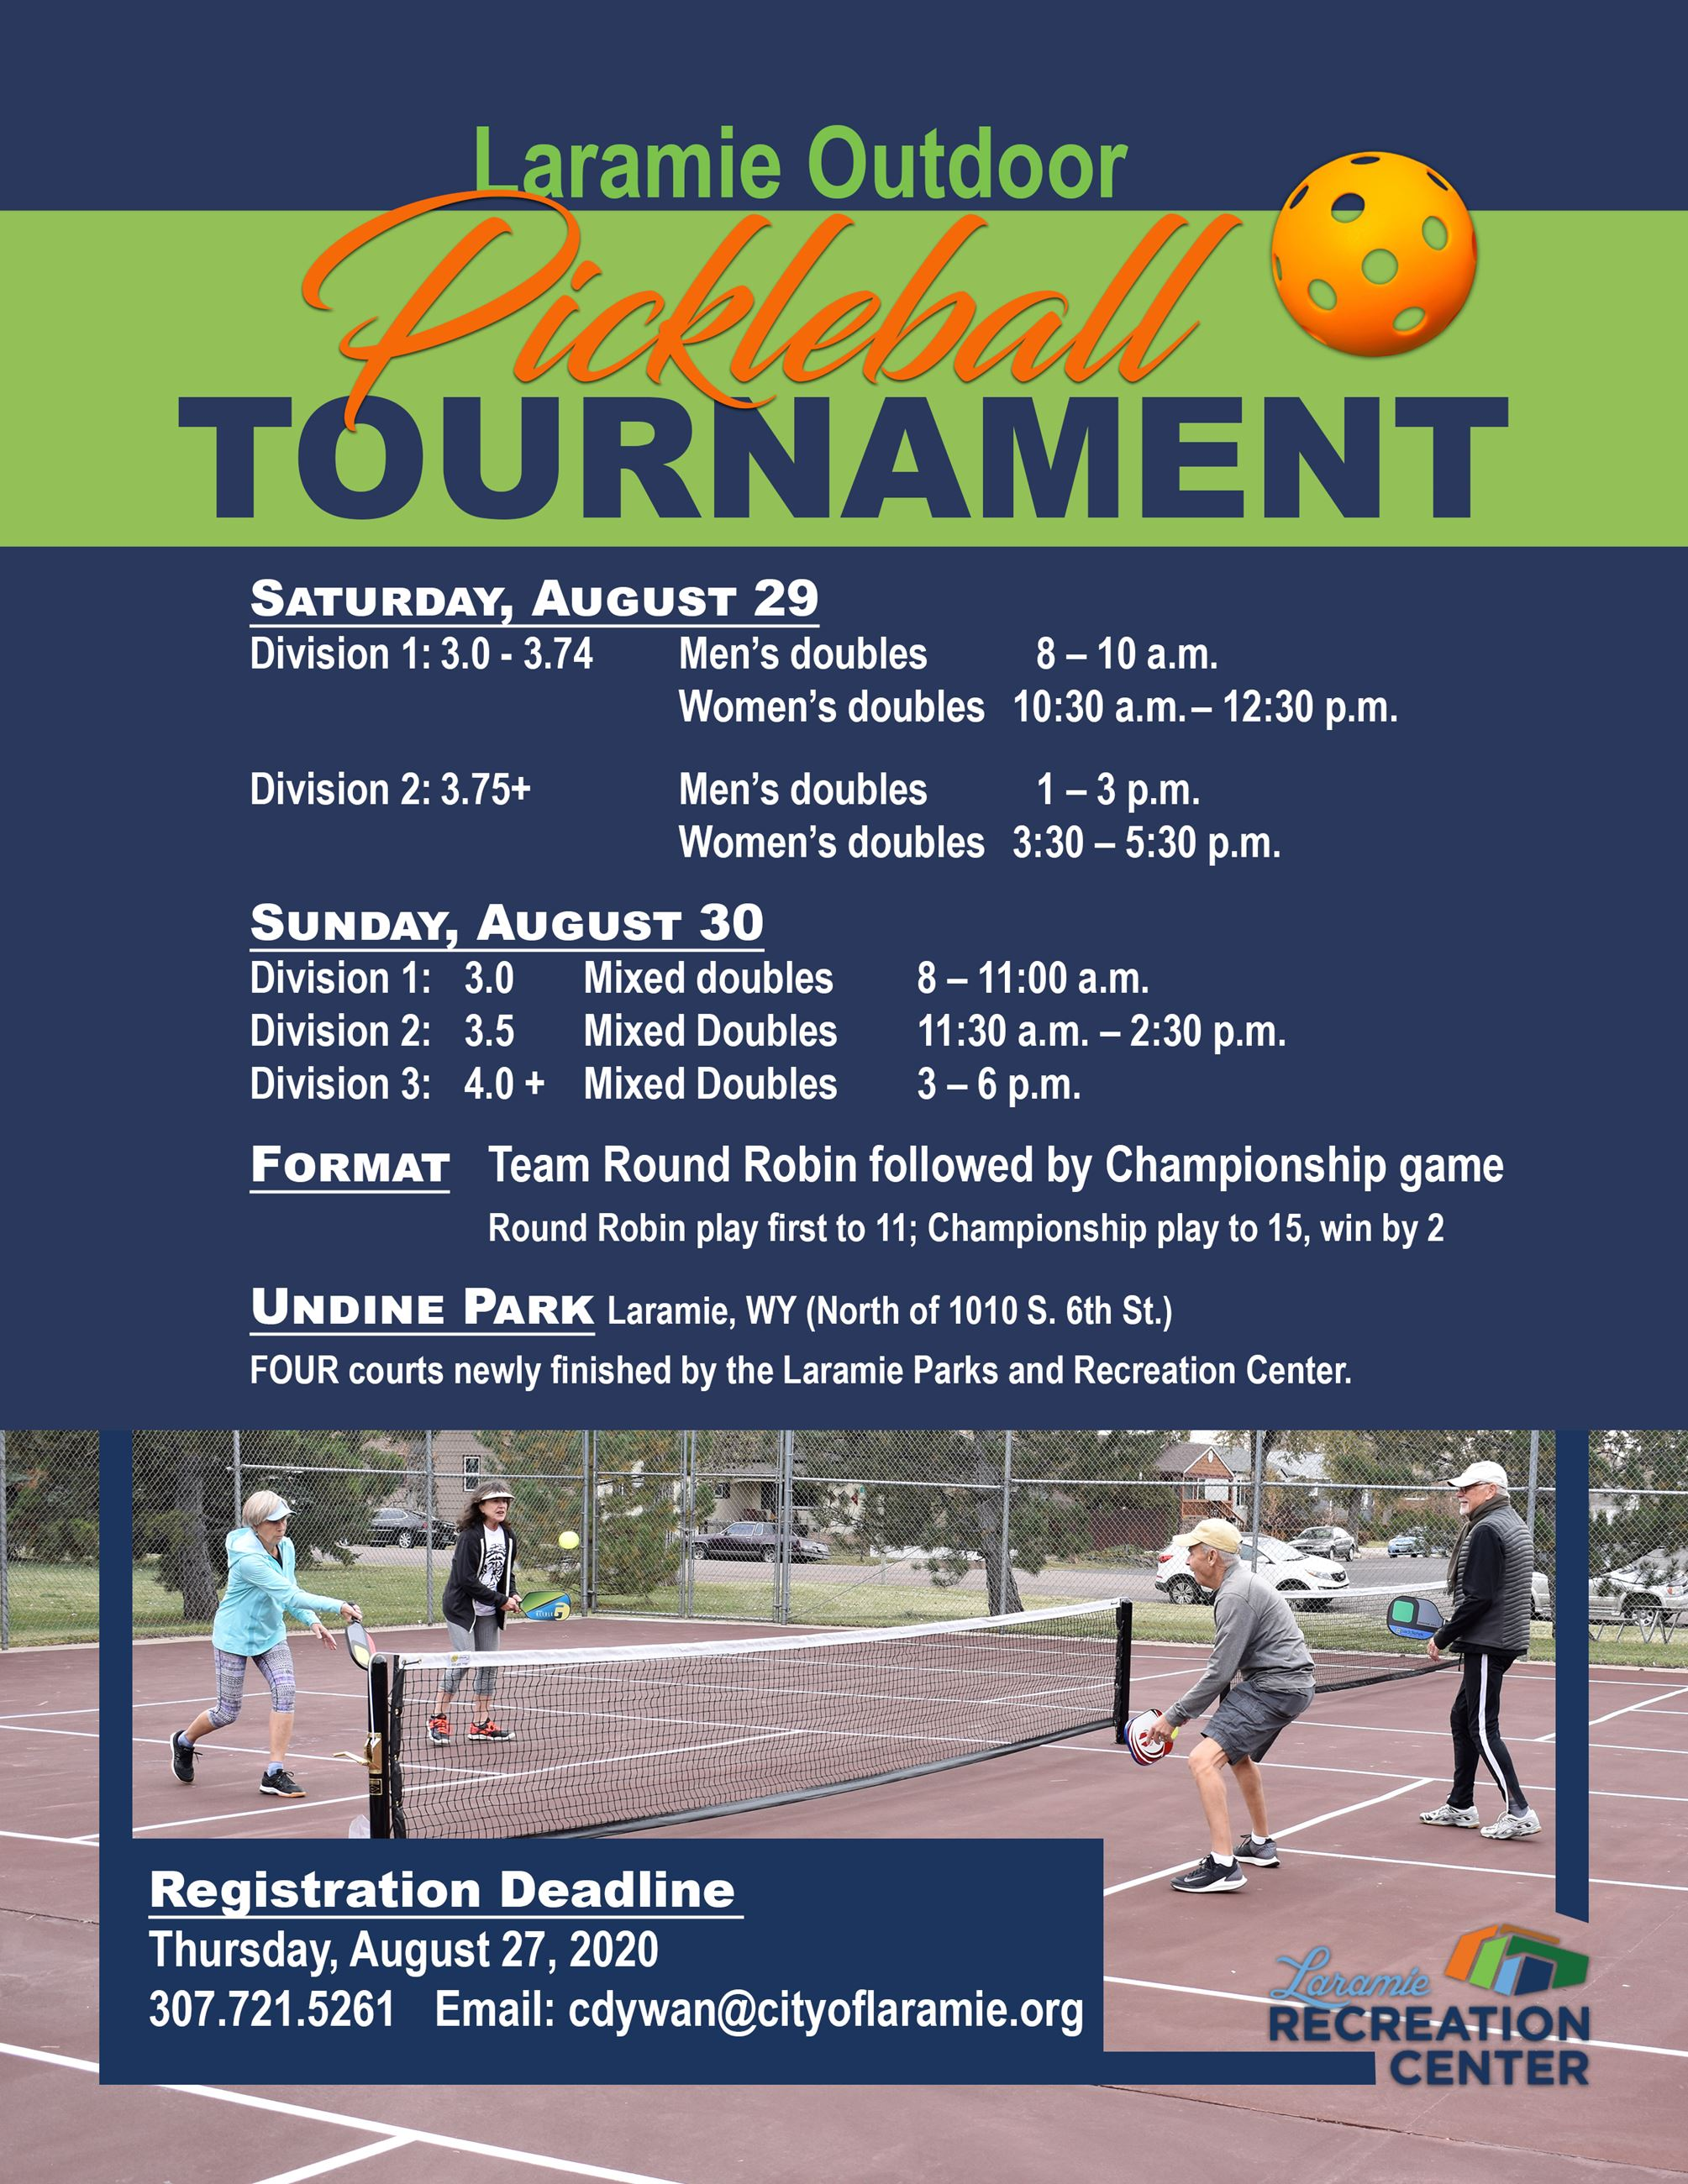 PickleBallTourney_Aug2020_8x10Flyer